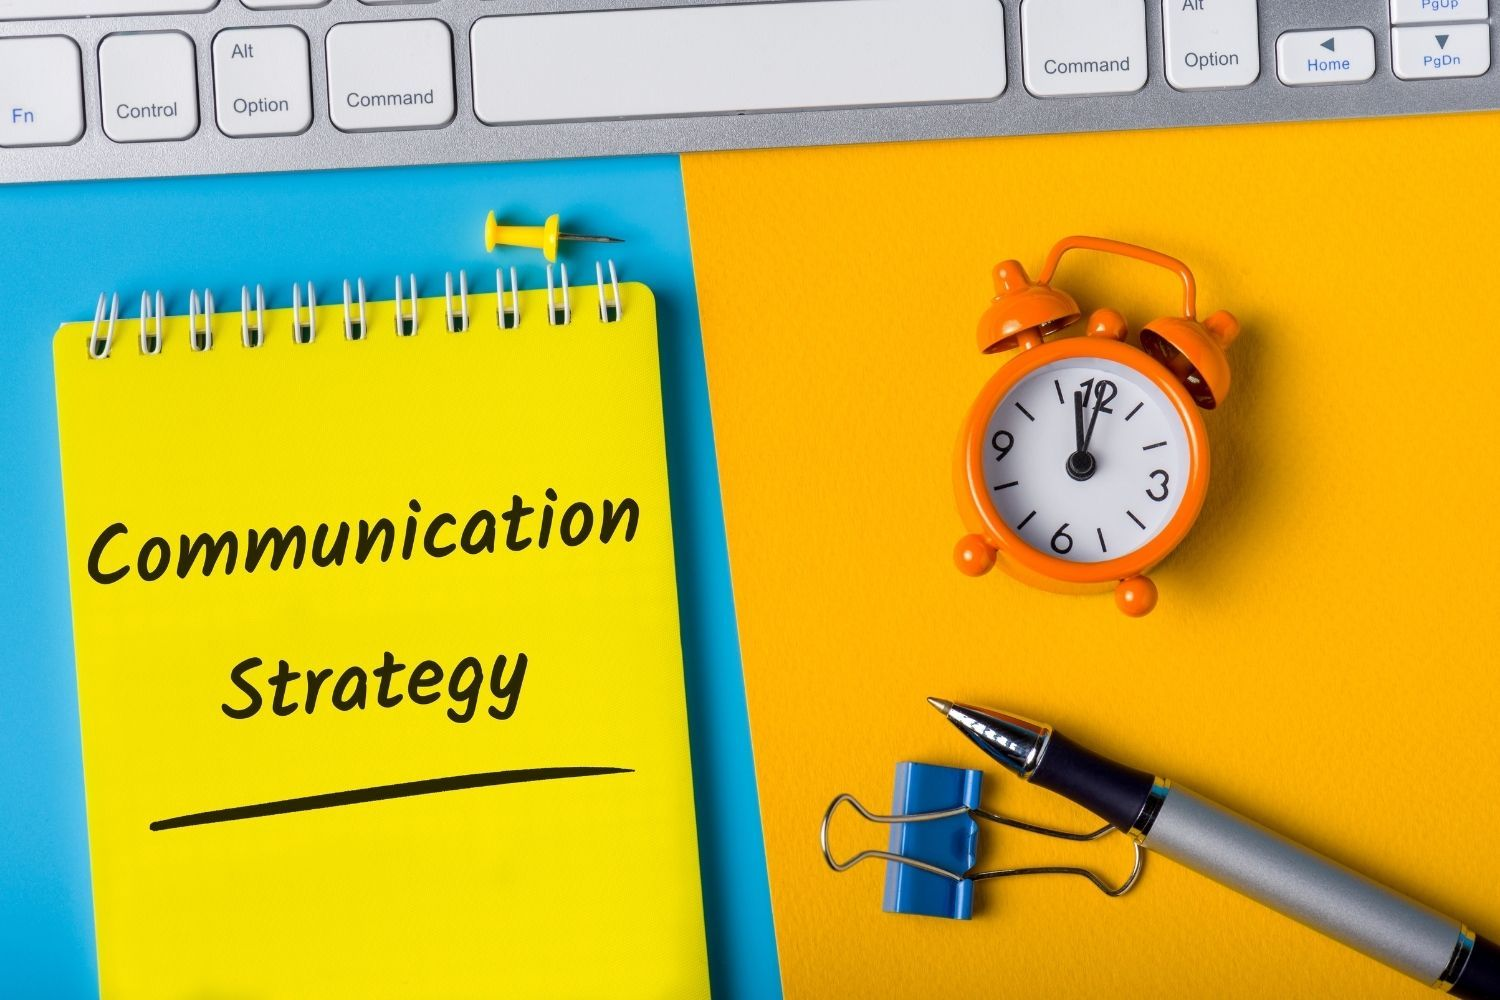 Practical advice on how to write a quality communication strategy quickly and effectively